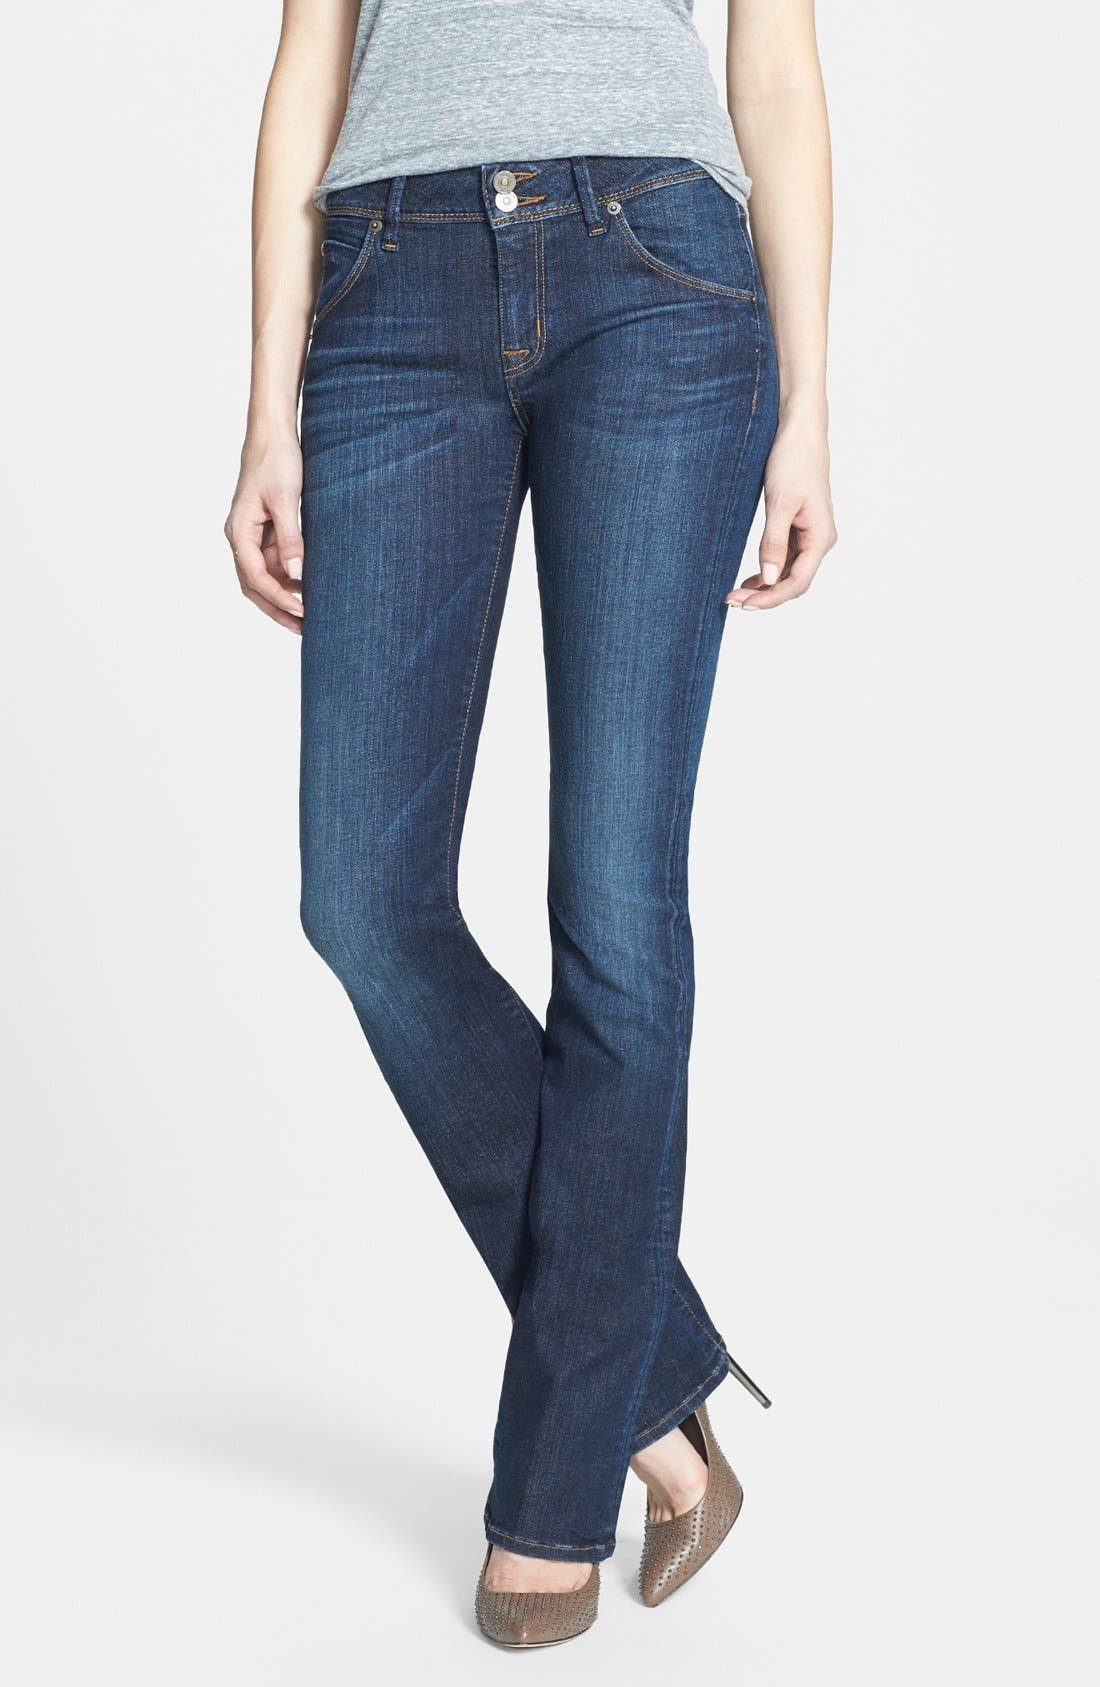 Alternate Image 1 Selected - Hudson Jeans 'Beth' Mid Rise Baby Bootcut Jeans (Nightfall)